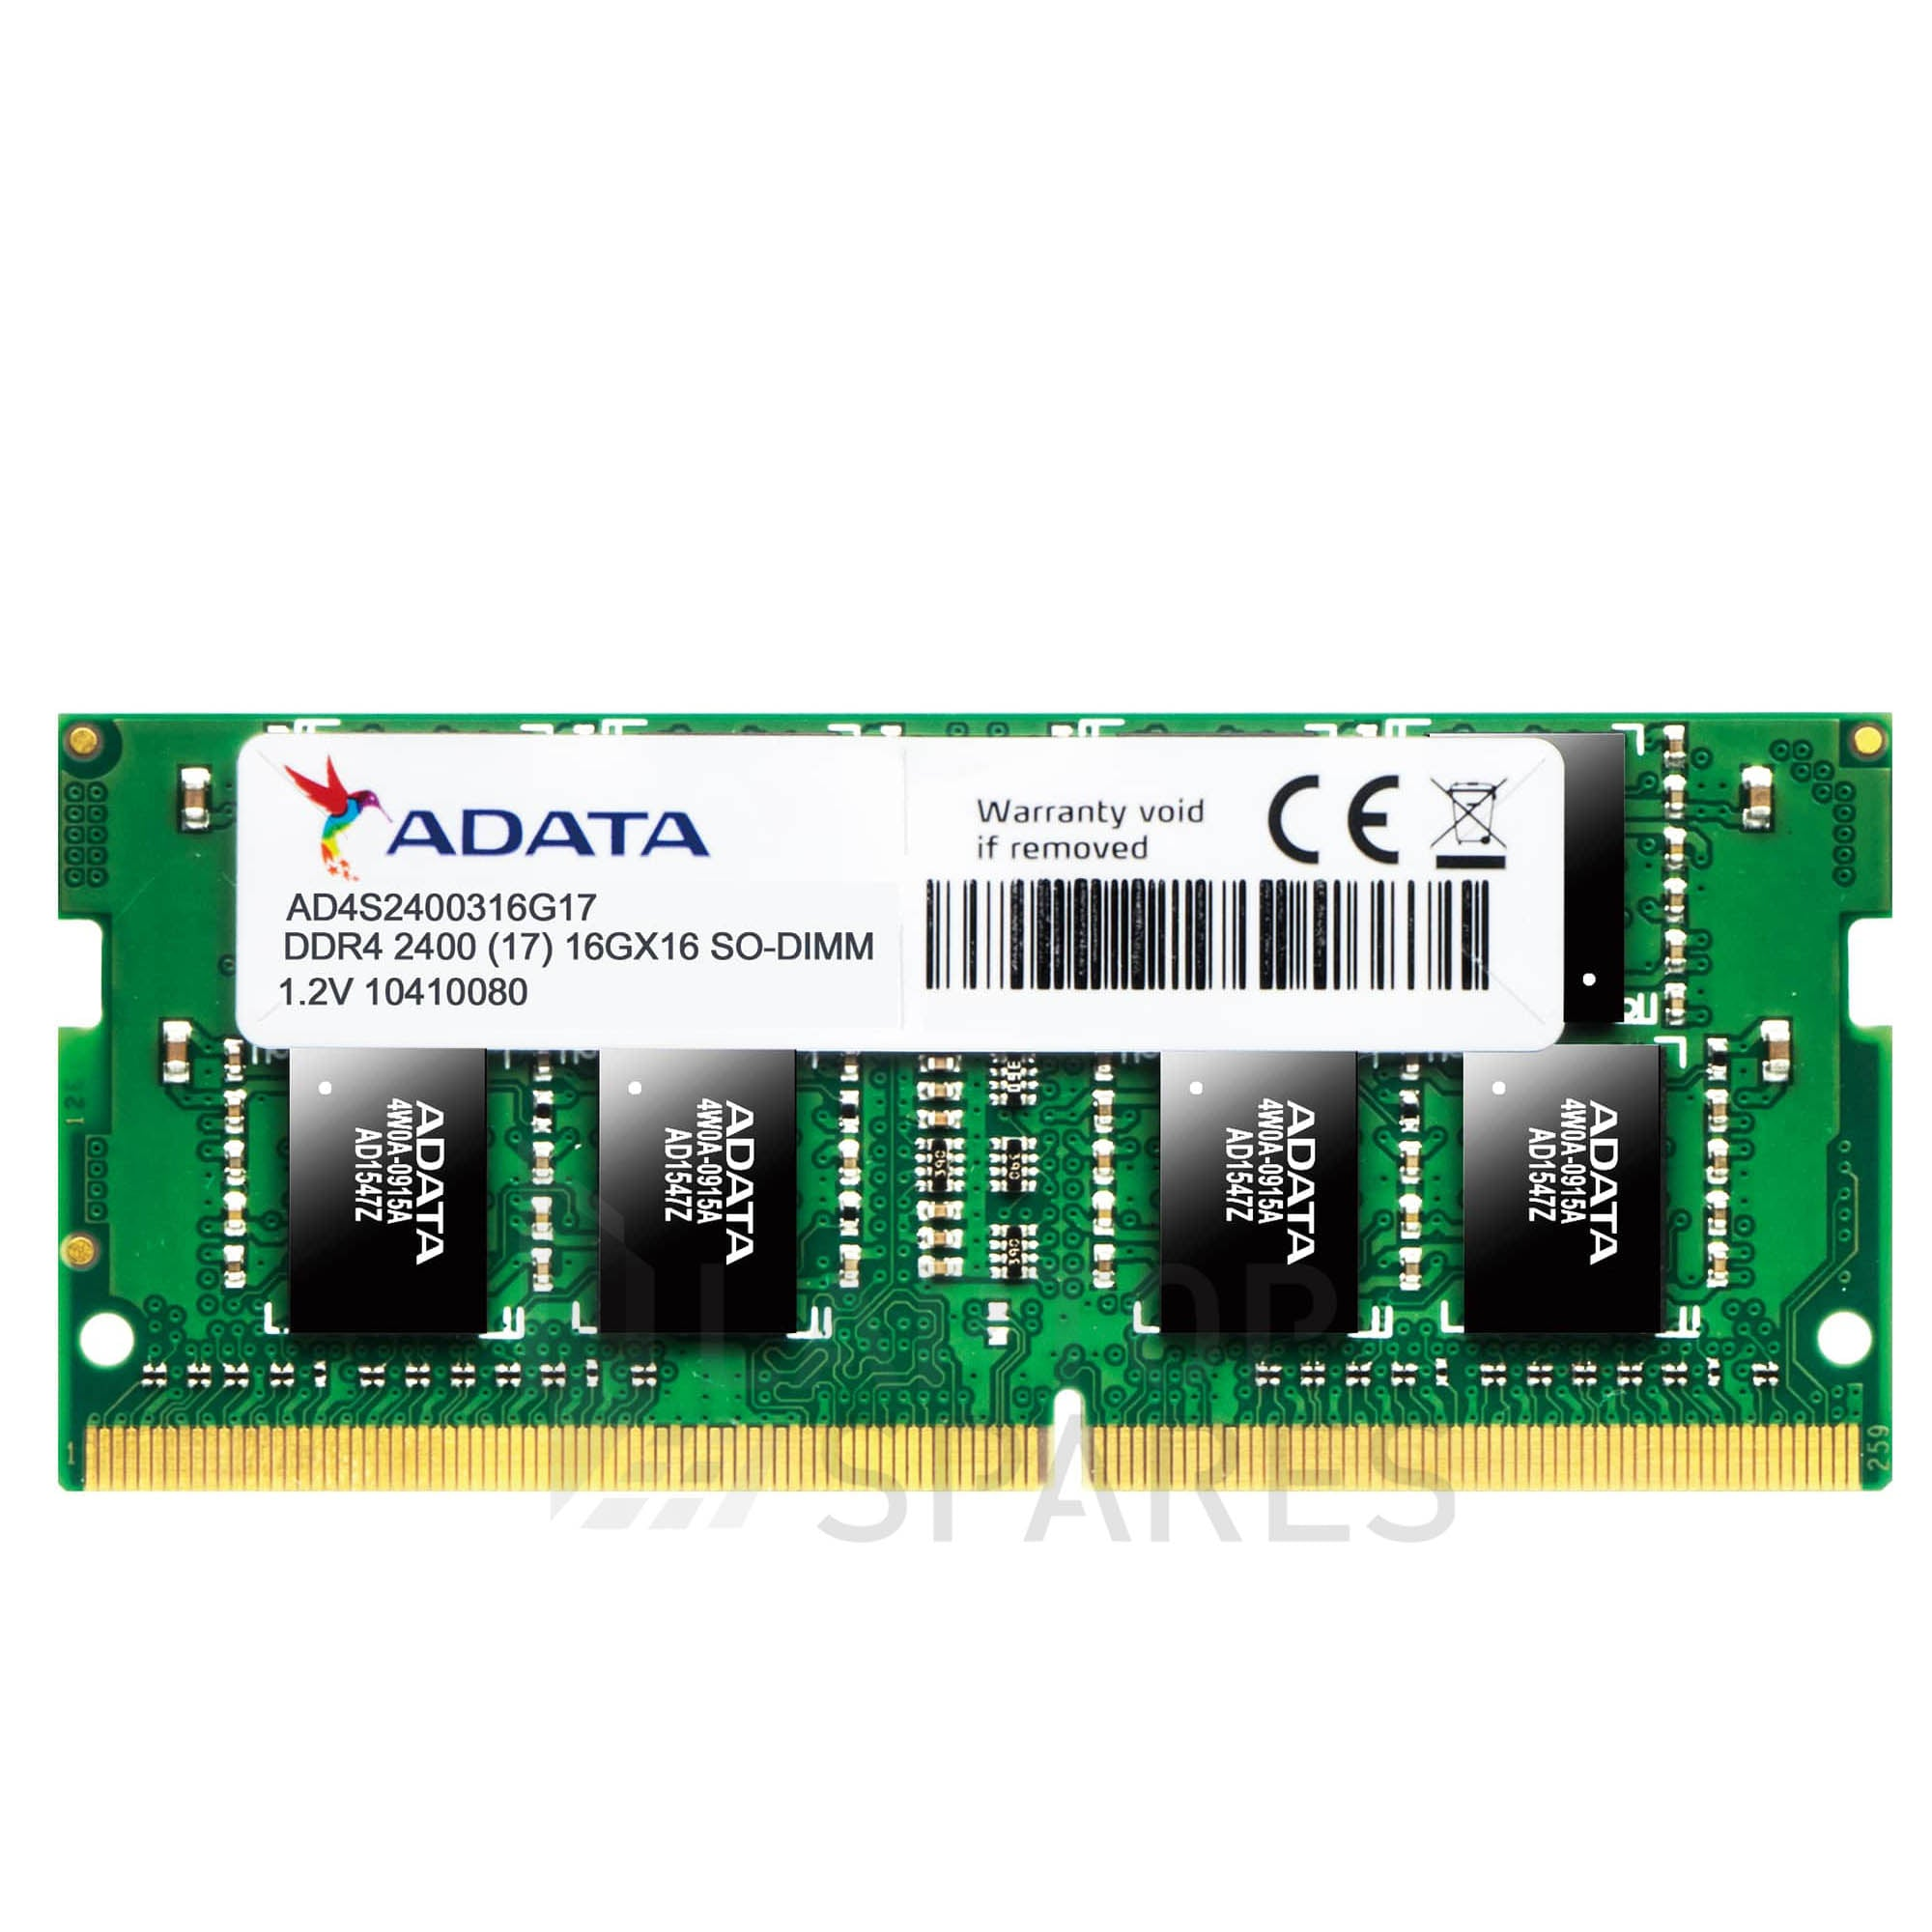 ADATA 8GB DDR4 2400MHz SO-DIMM LAPTOP RAM